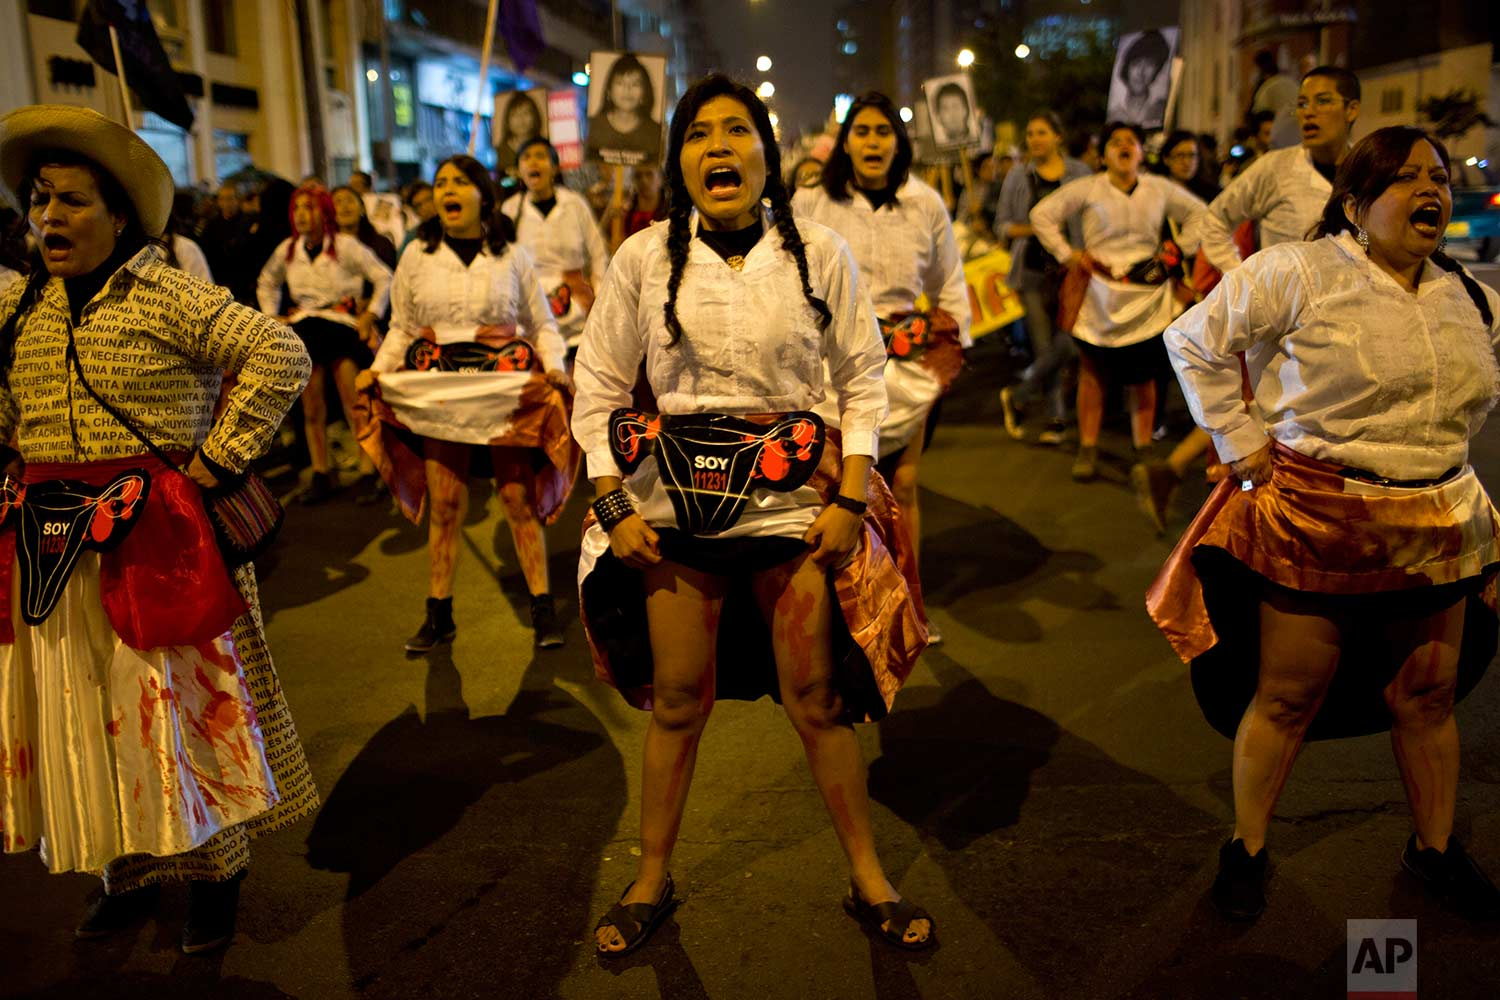 Protesters, representing forcibly sterilized women by the government during the presidency of Alberto Fujimori, perform during a march in Lima, Peru, Friday, July 7, 2017. (AP Photo/Rodrigo Abd)